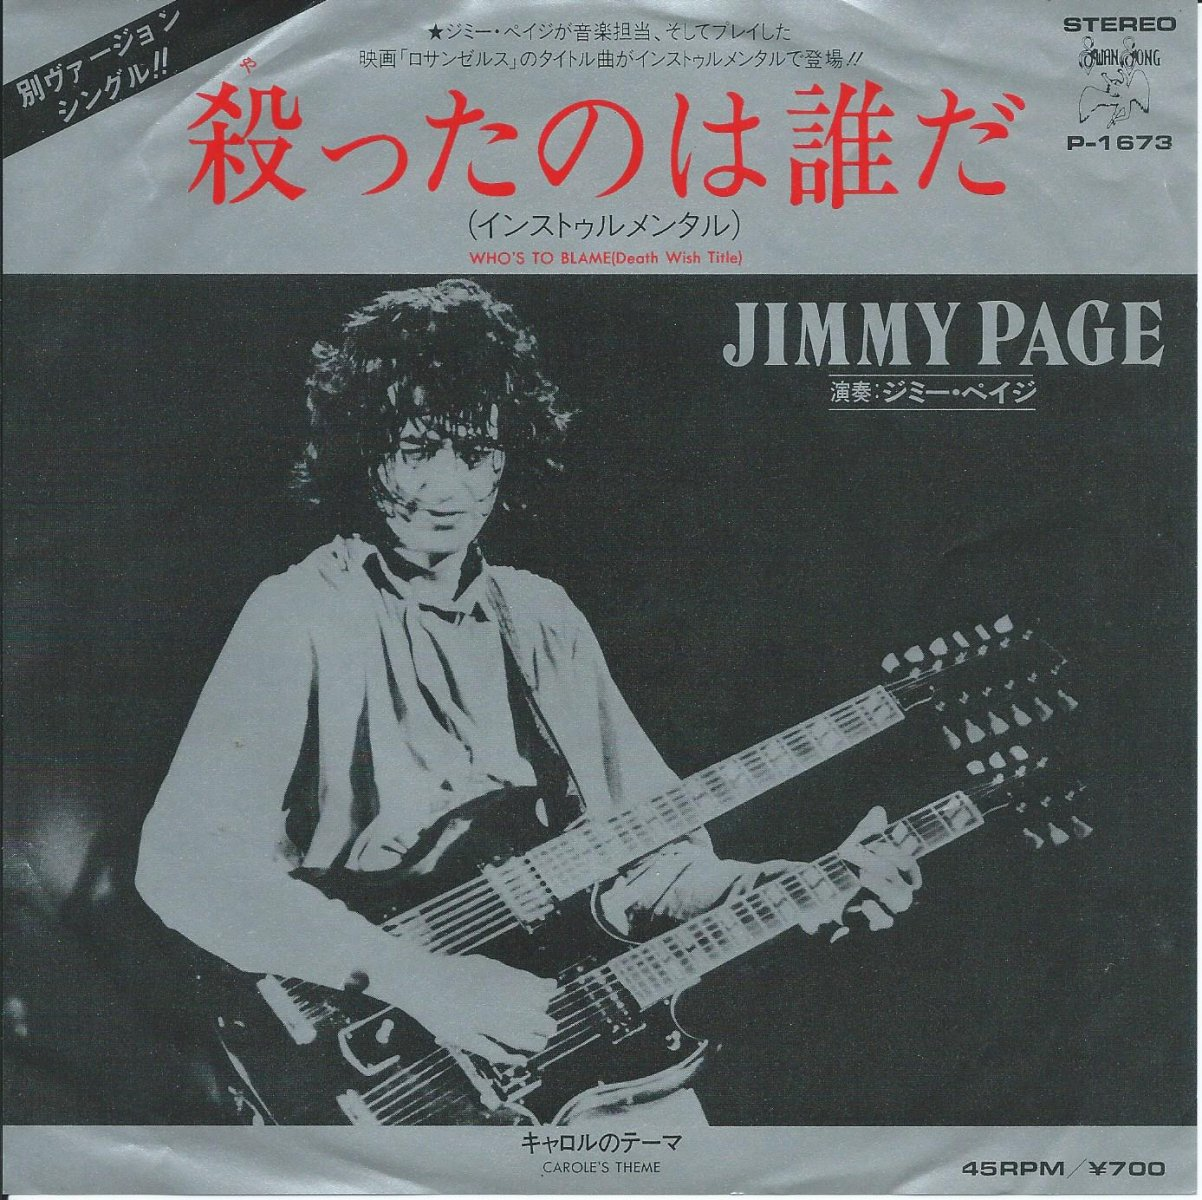 ジミー・ペイジ JIMMY PAGE ‎/ 殺ったのは誰だ WHO'S TO BLAME (DEATH WISH TITLE) (7